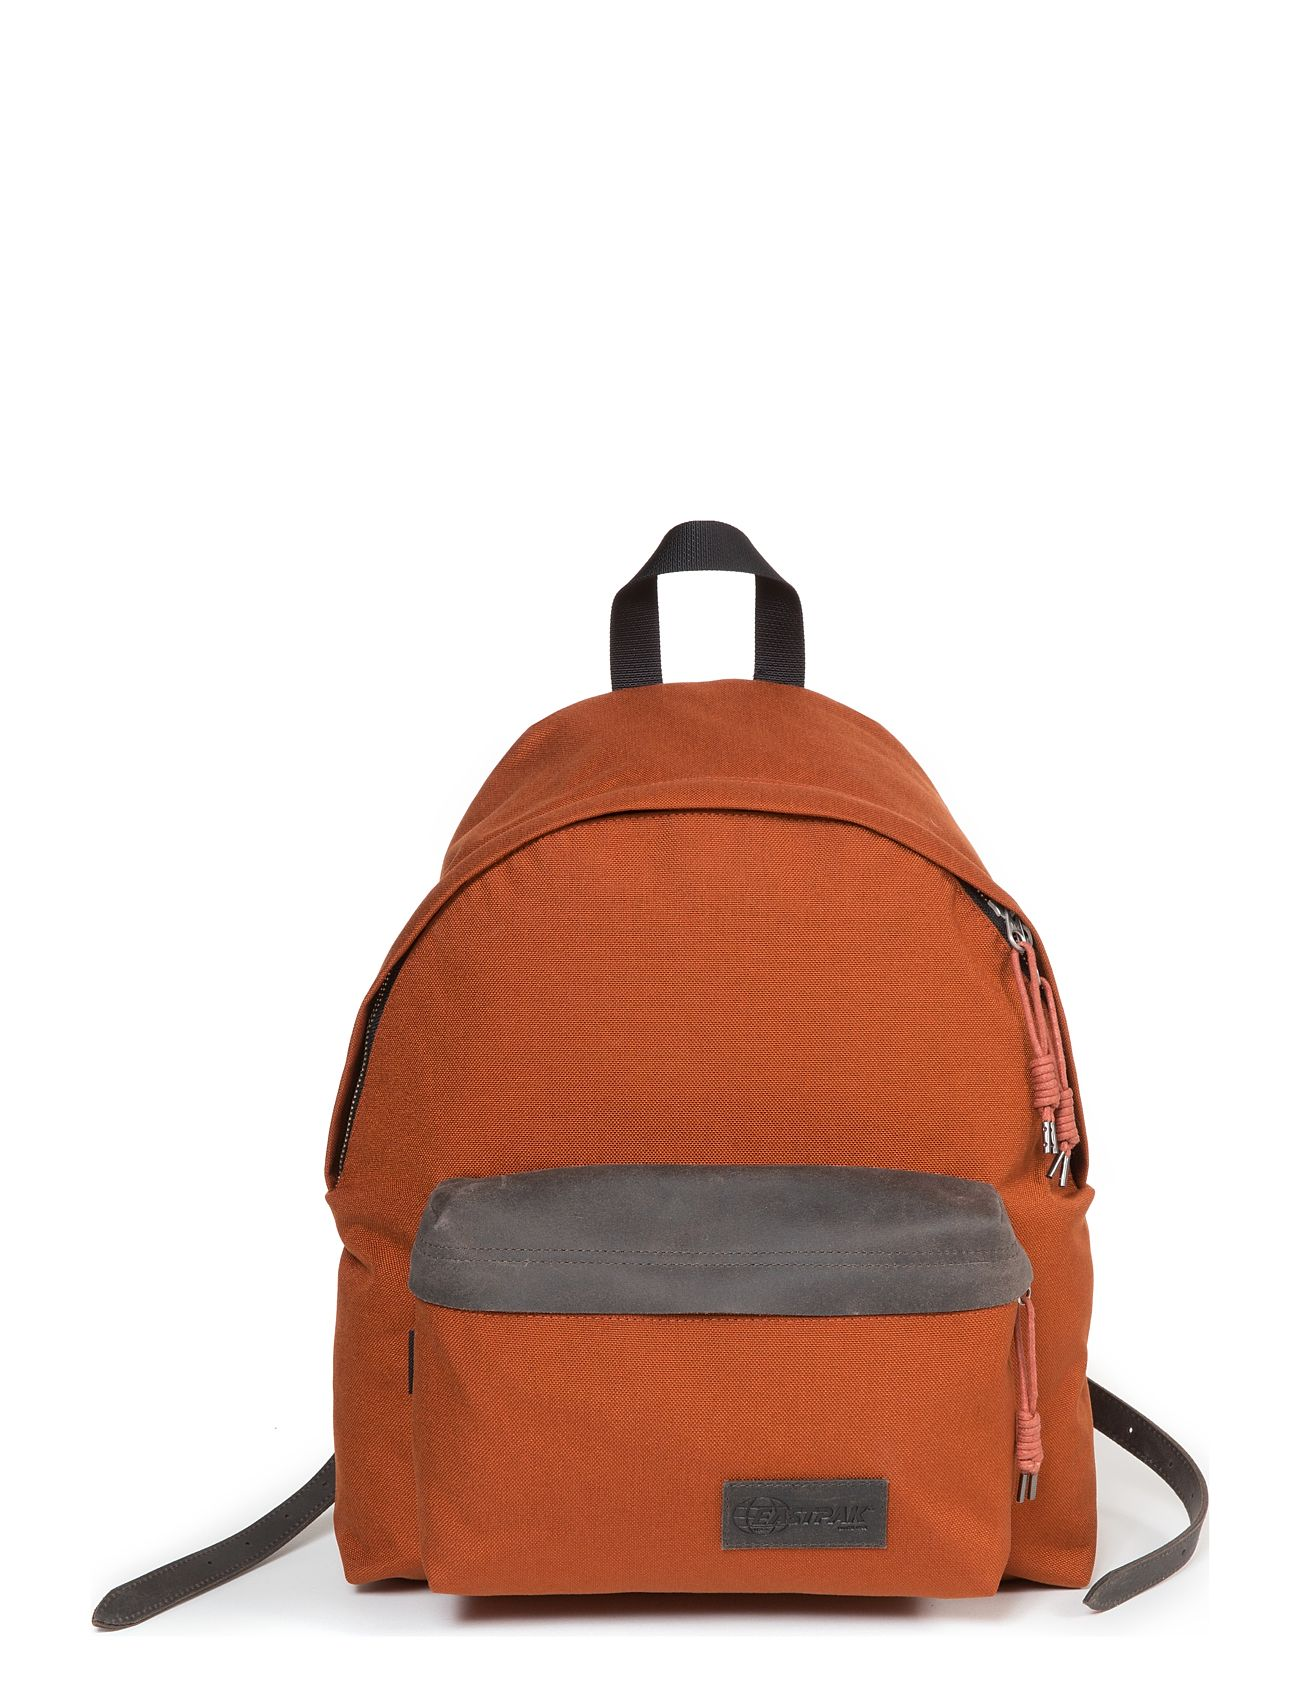 EASTPAK Padded Pak'R Rucksack Tasche Orange EASTPAK